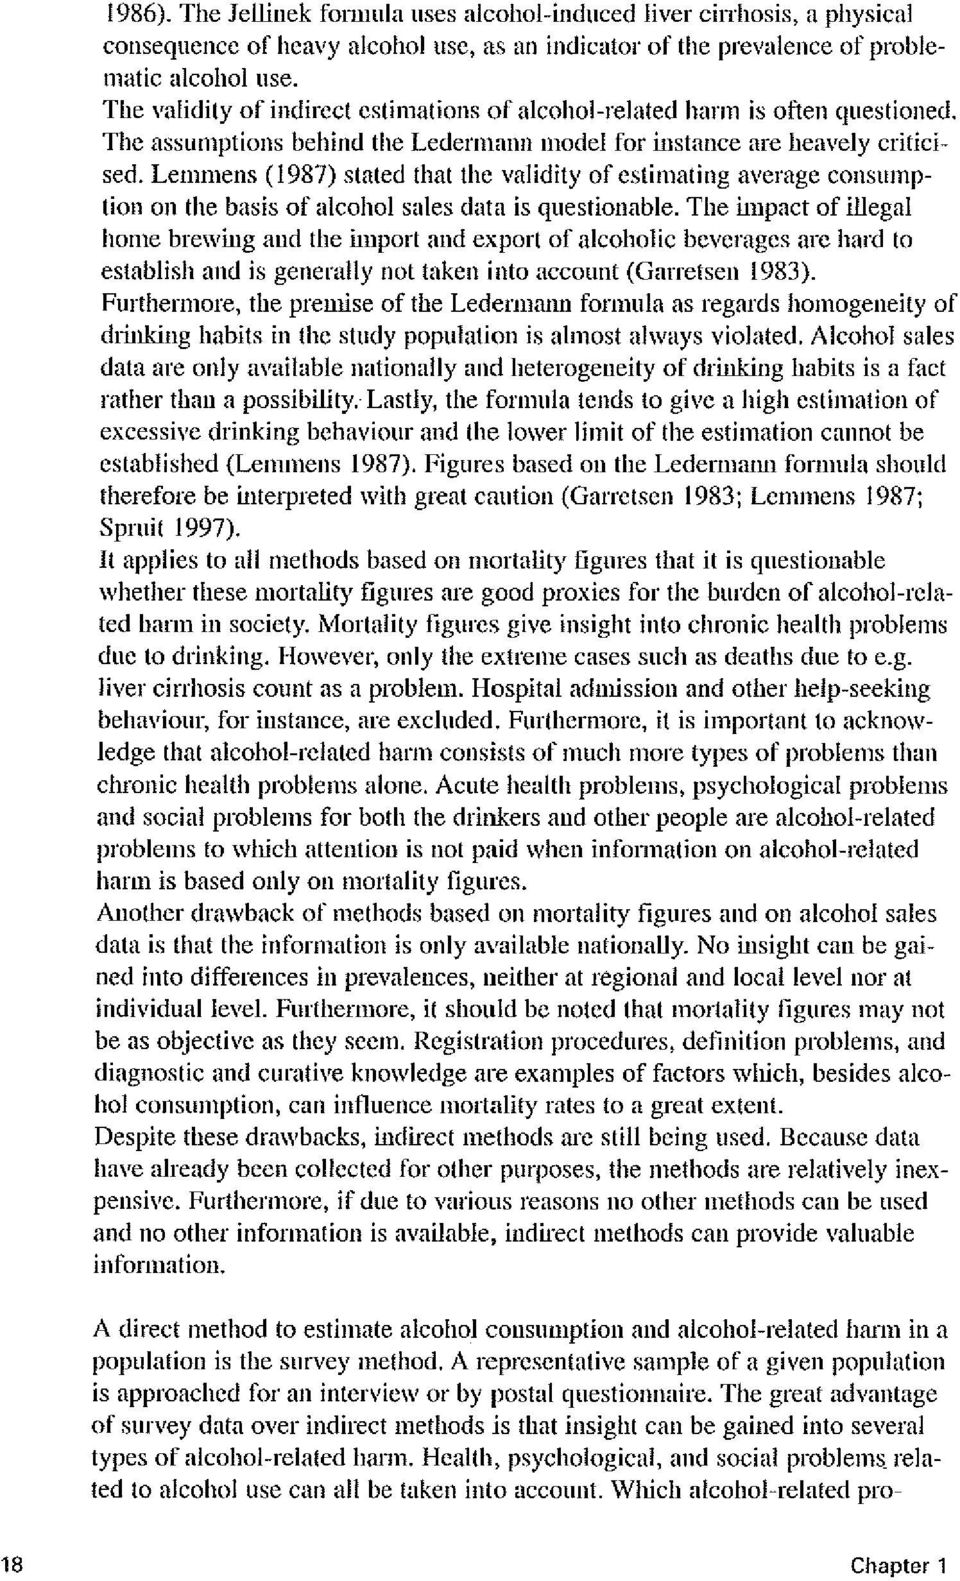 Lemmens (1987) stated that the validity of estimating average consumption on the basis of alcohol sales data is questionable.